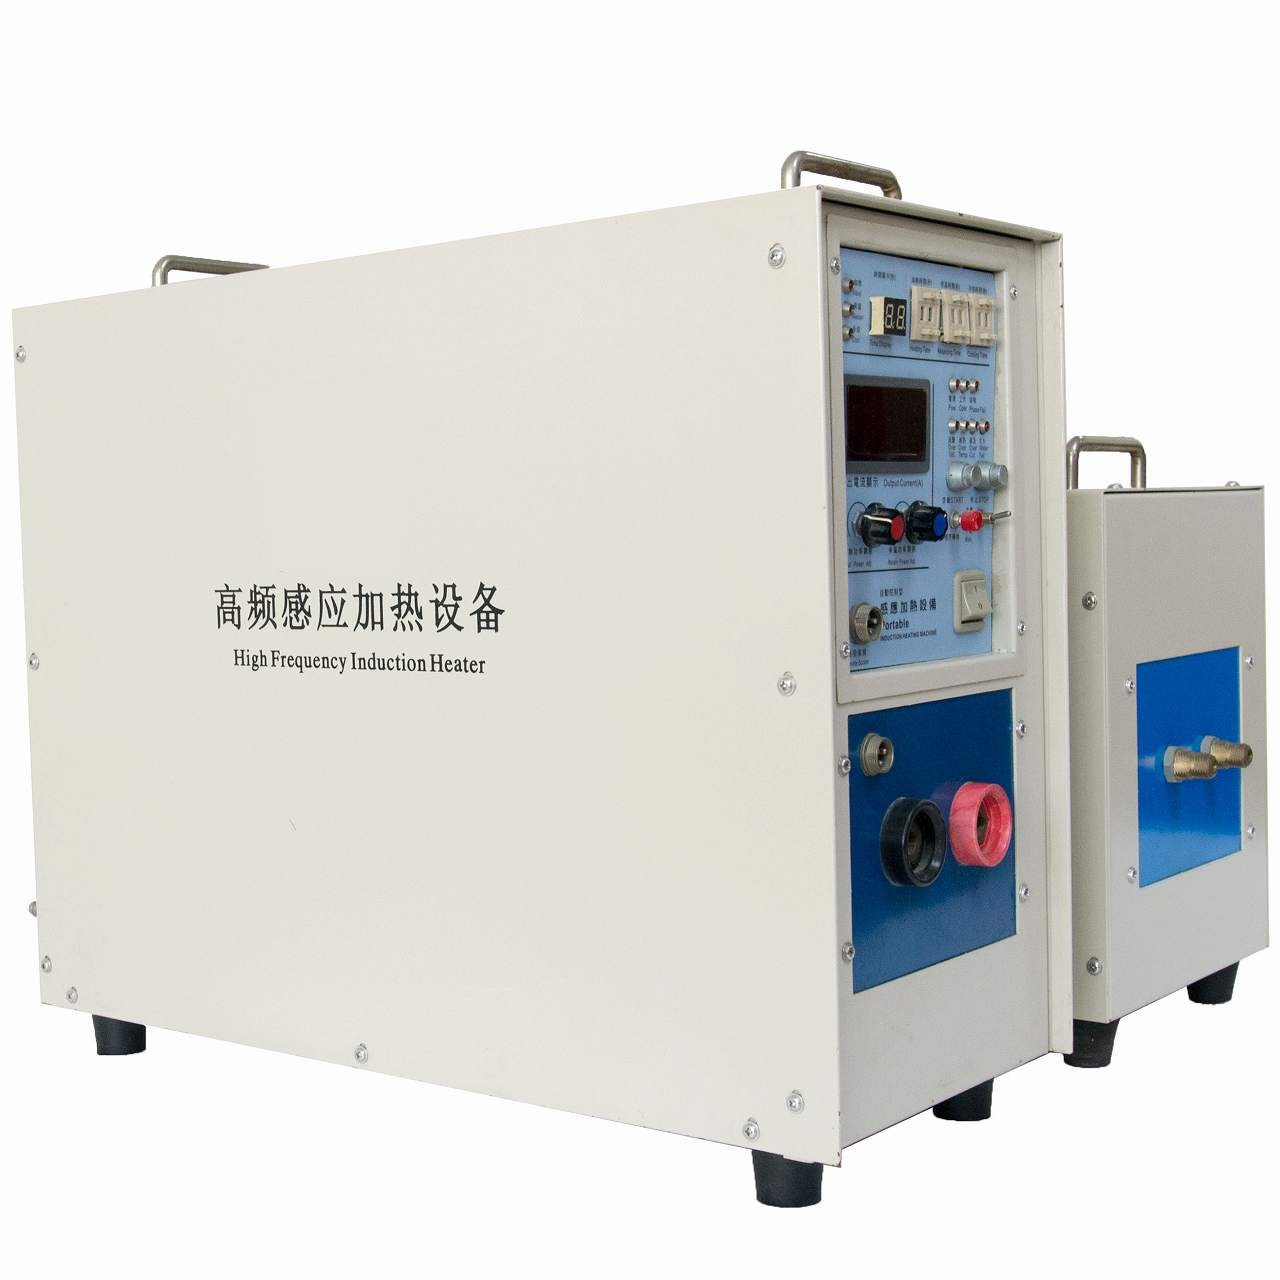 35kw High Frequency Induction Heater DDFT-35